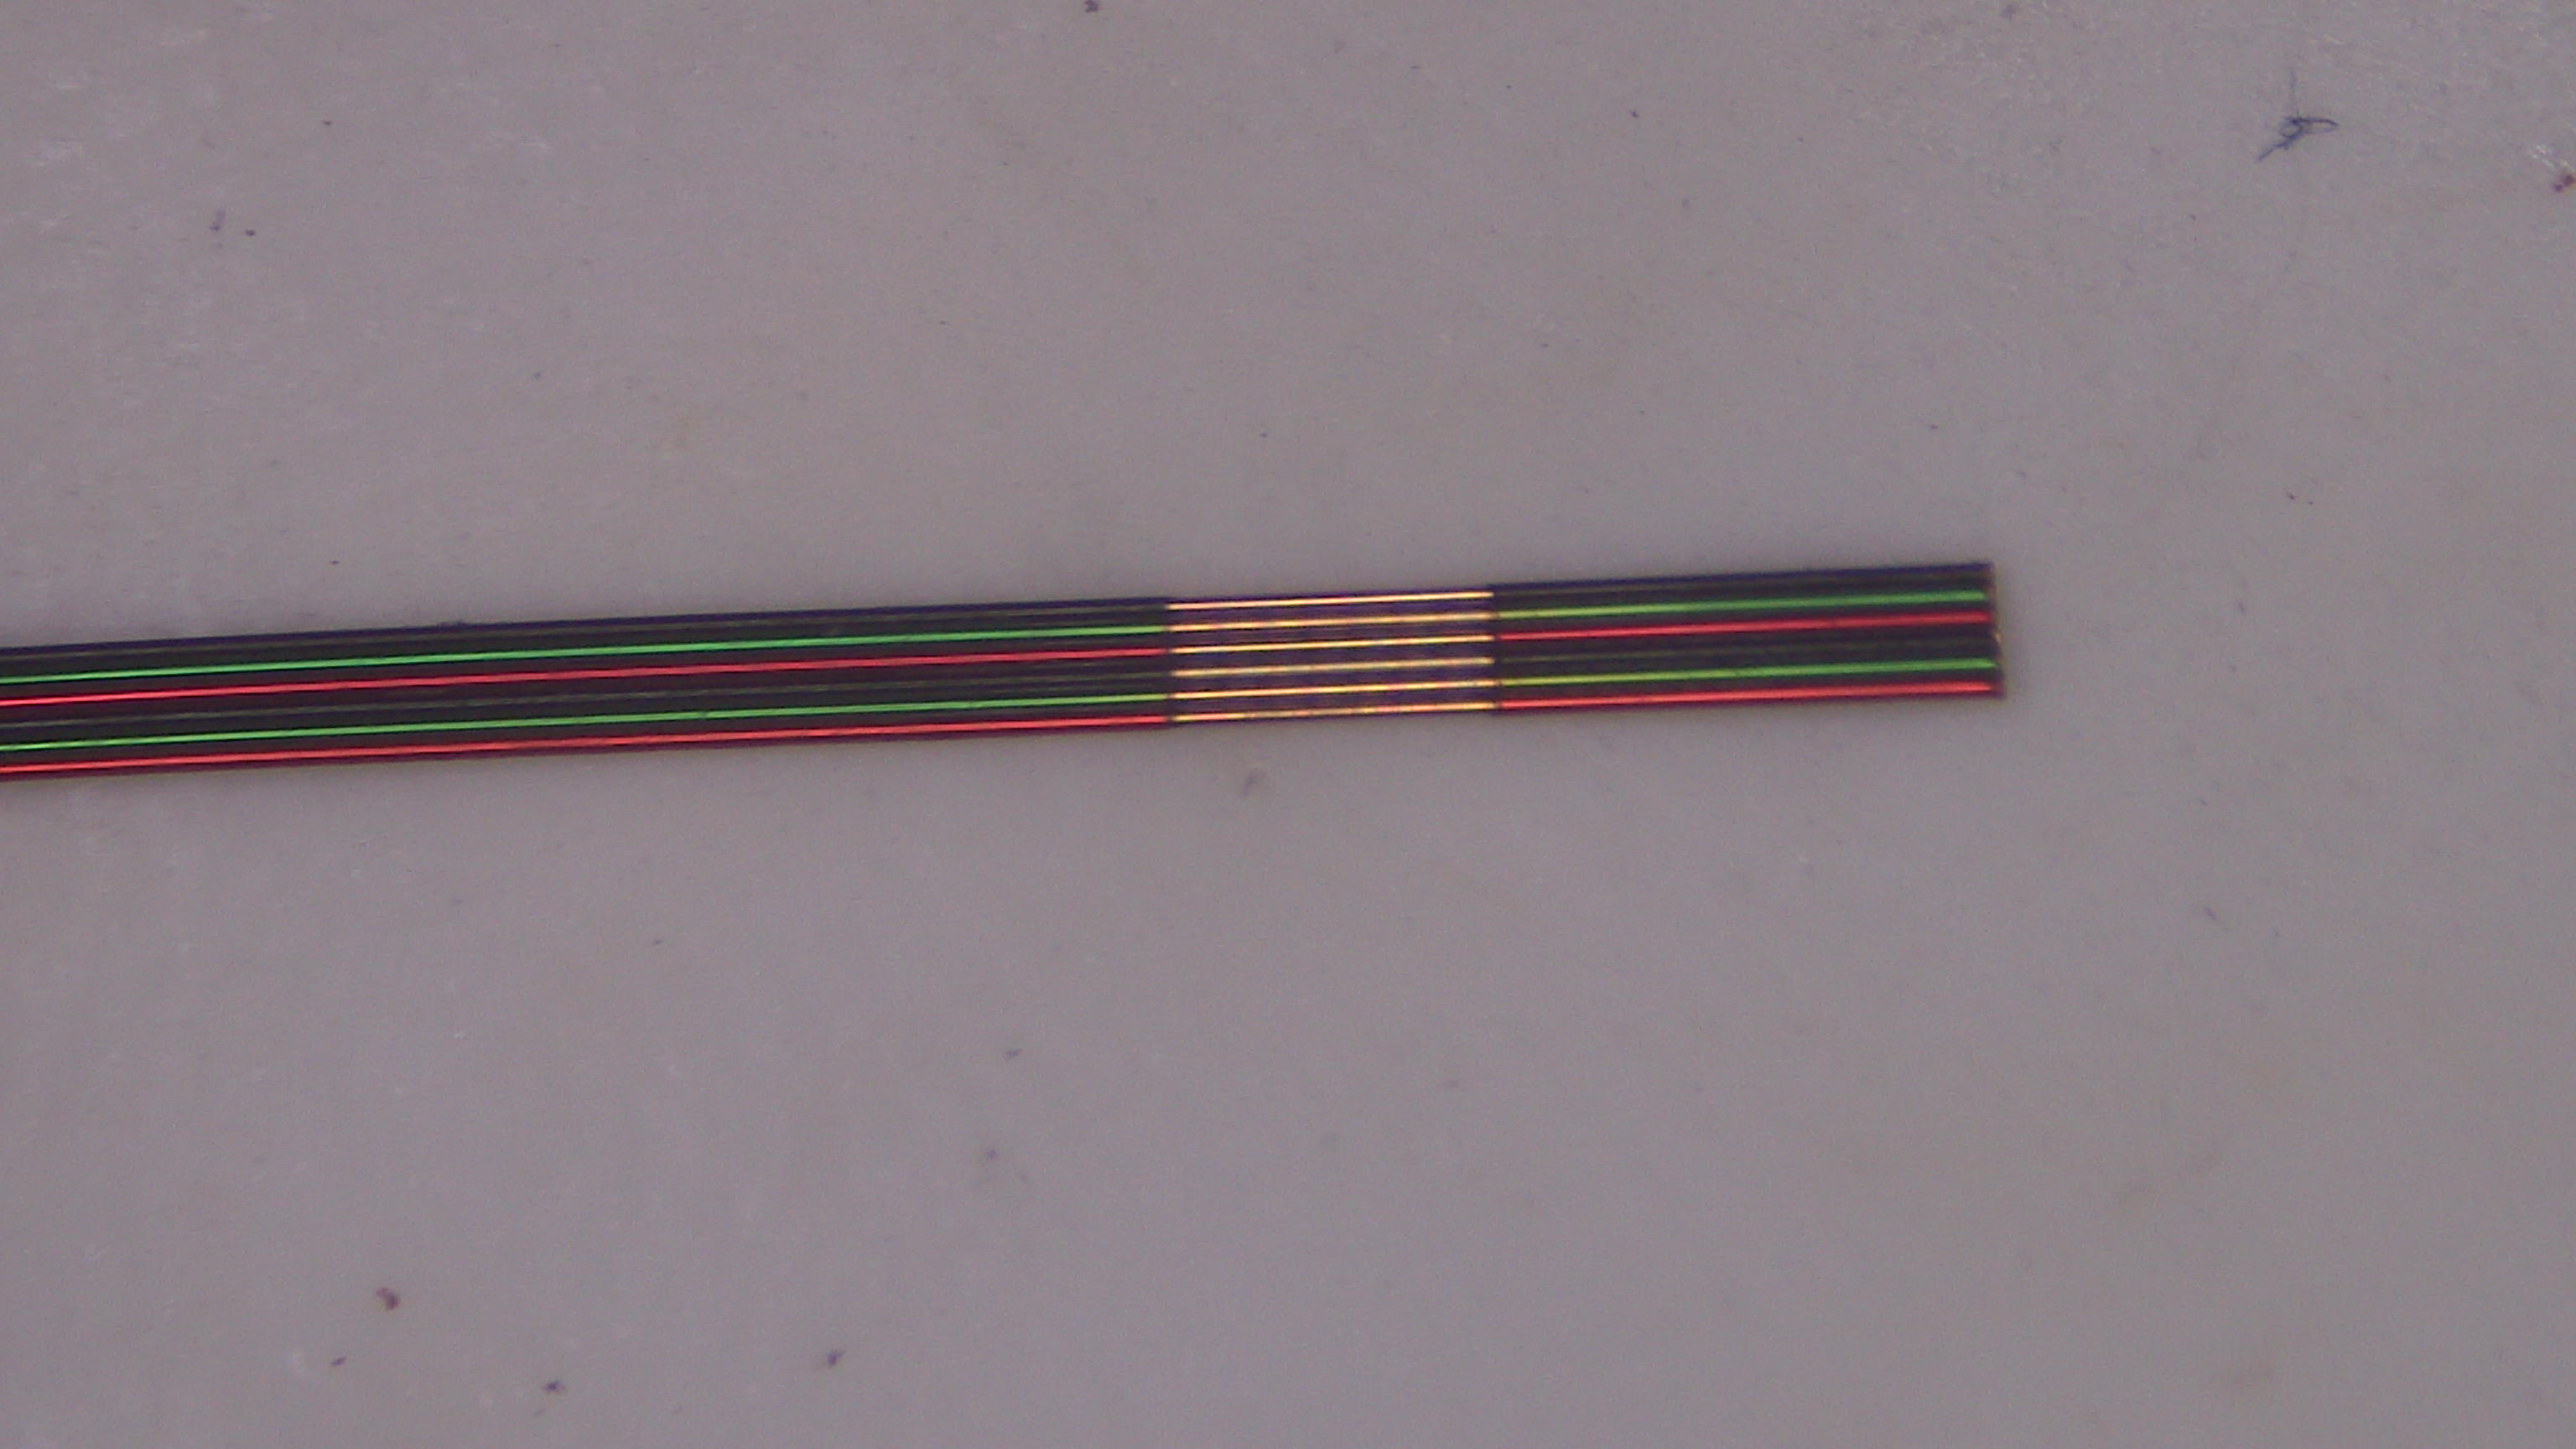 Ultrafine 36 gauge ribbon cable